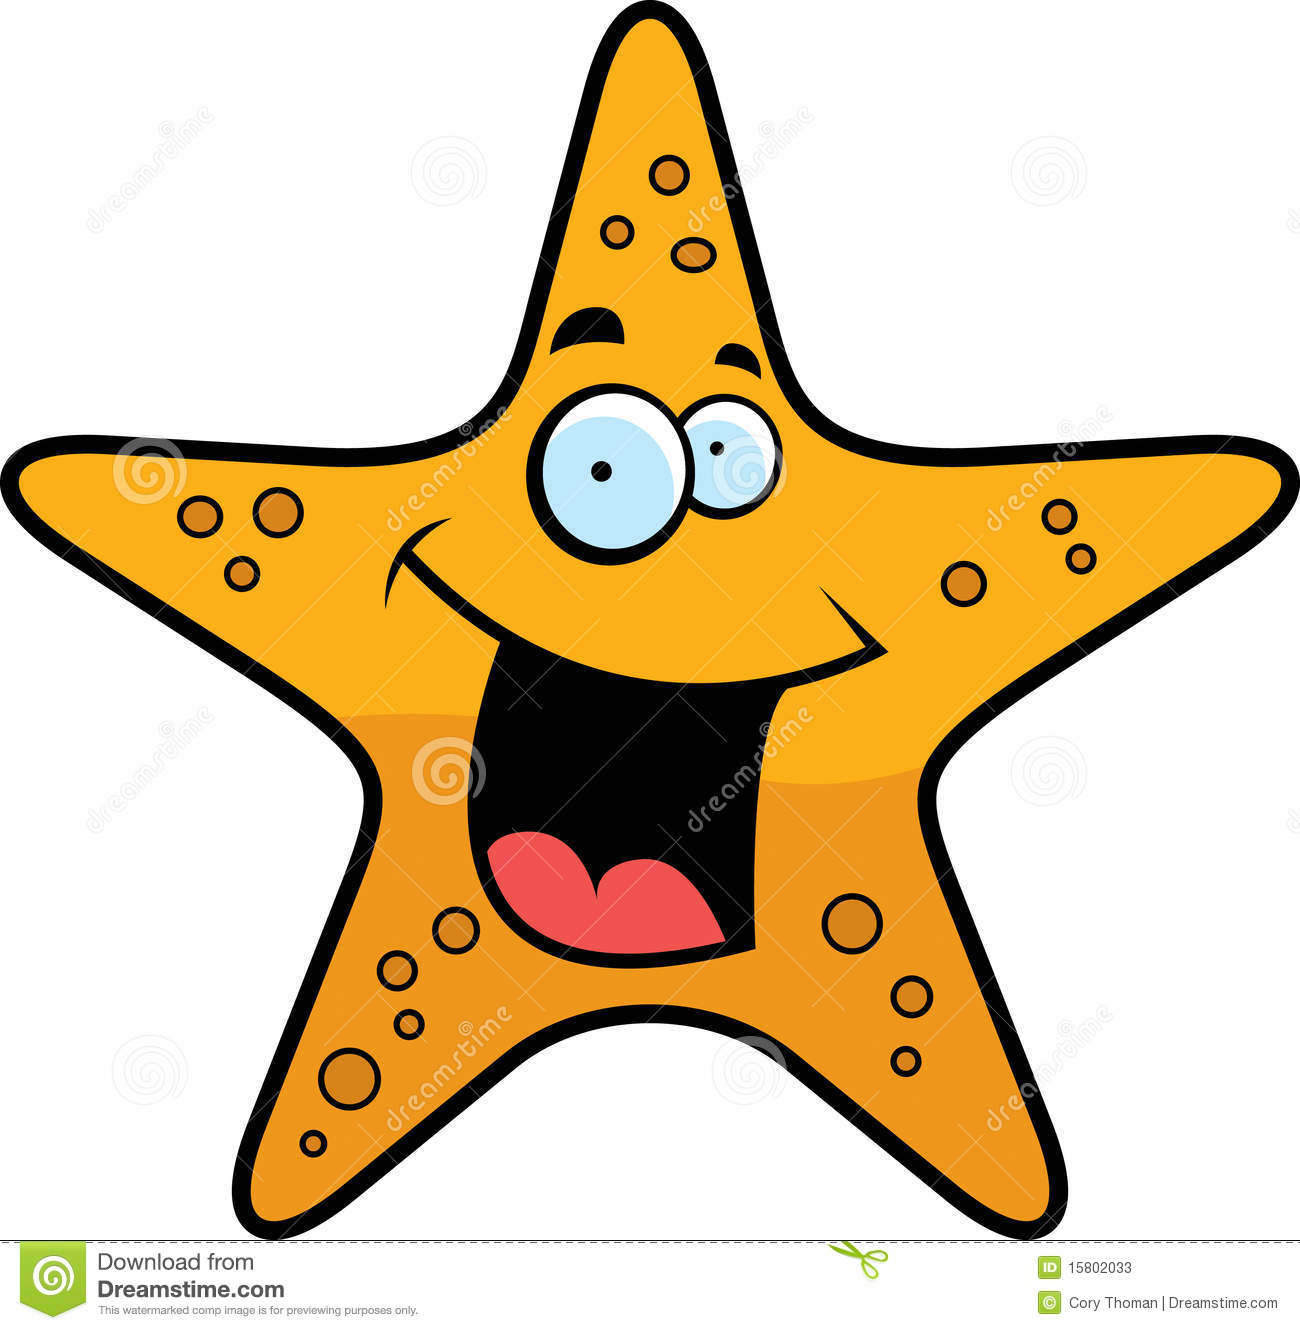 Starfish Smiling Stock Photos - Image: 15802033